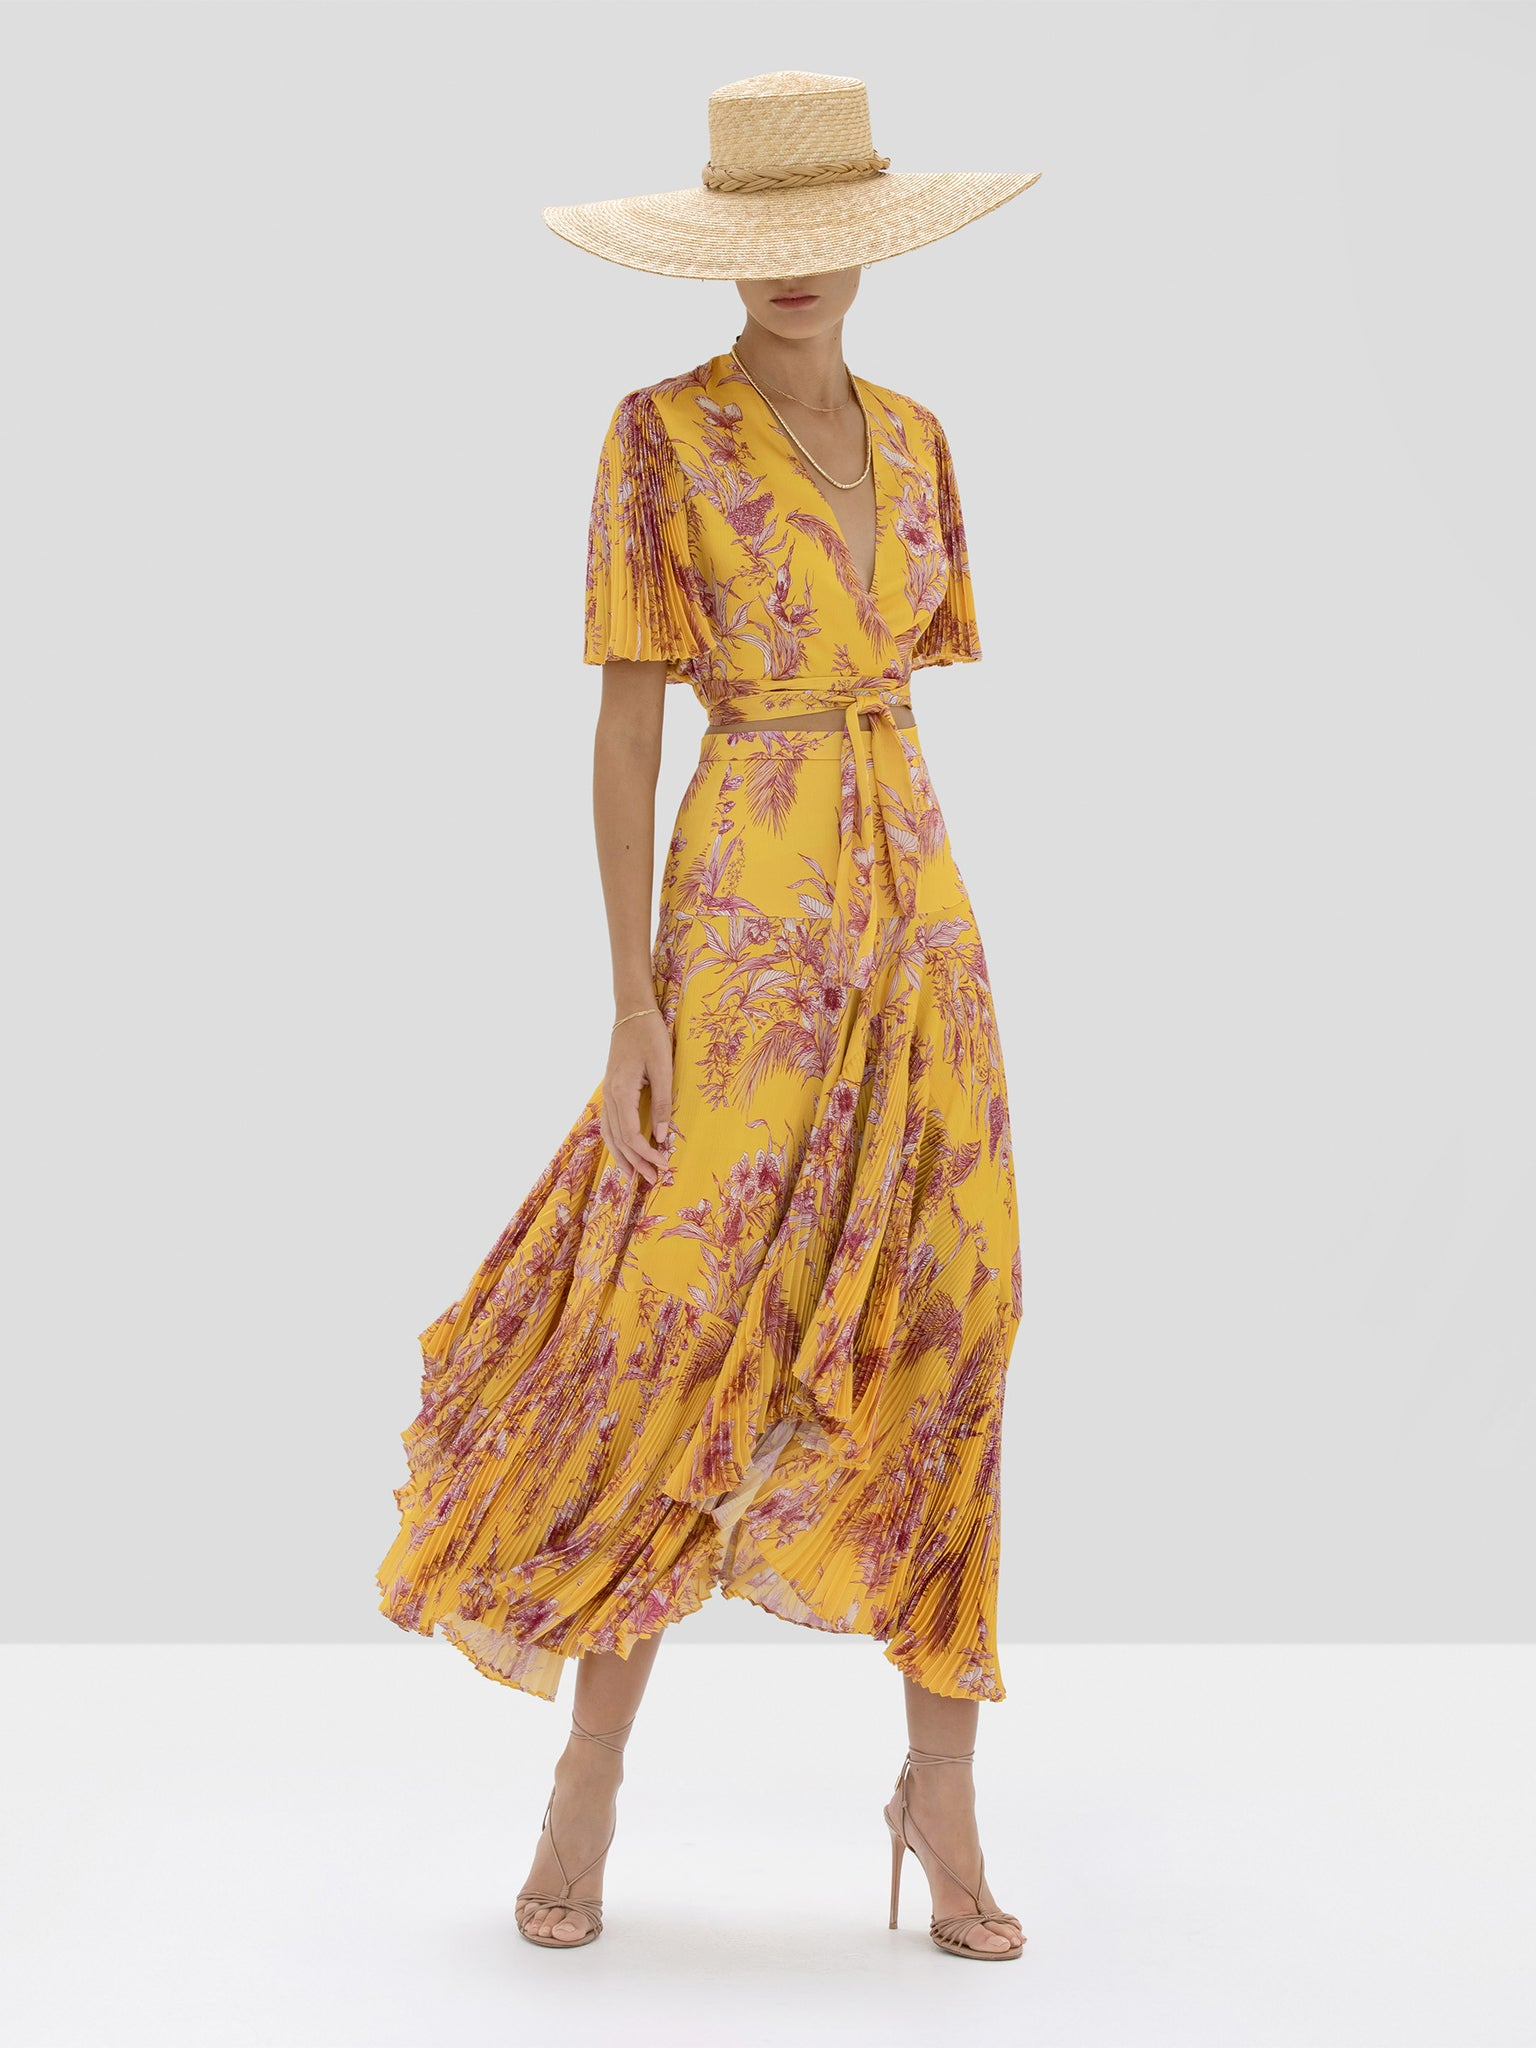 Alexis Rylie Top and Tarou Skirt in Tuscan Palm from Spring Summer 2020 Collection